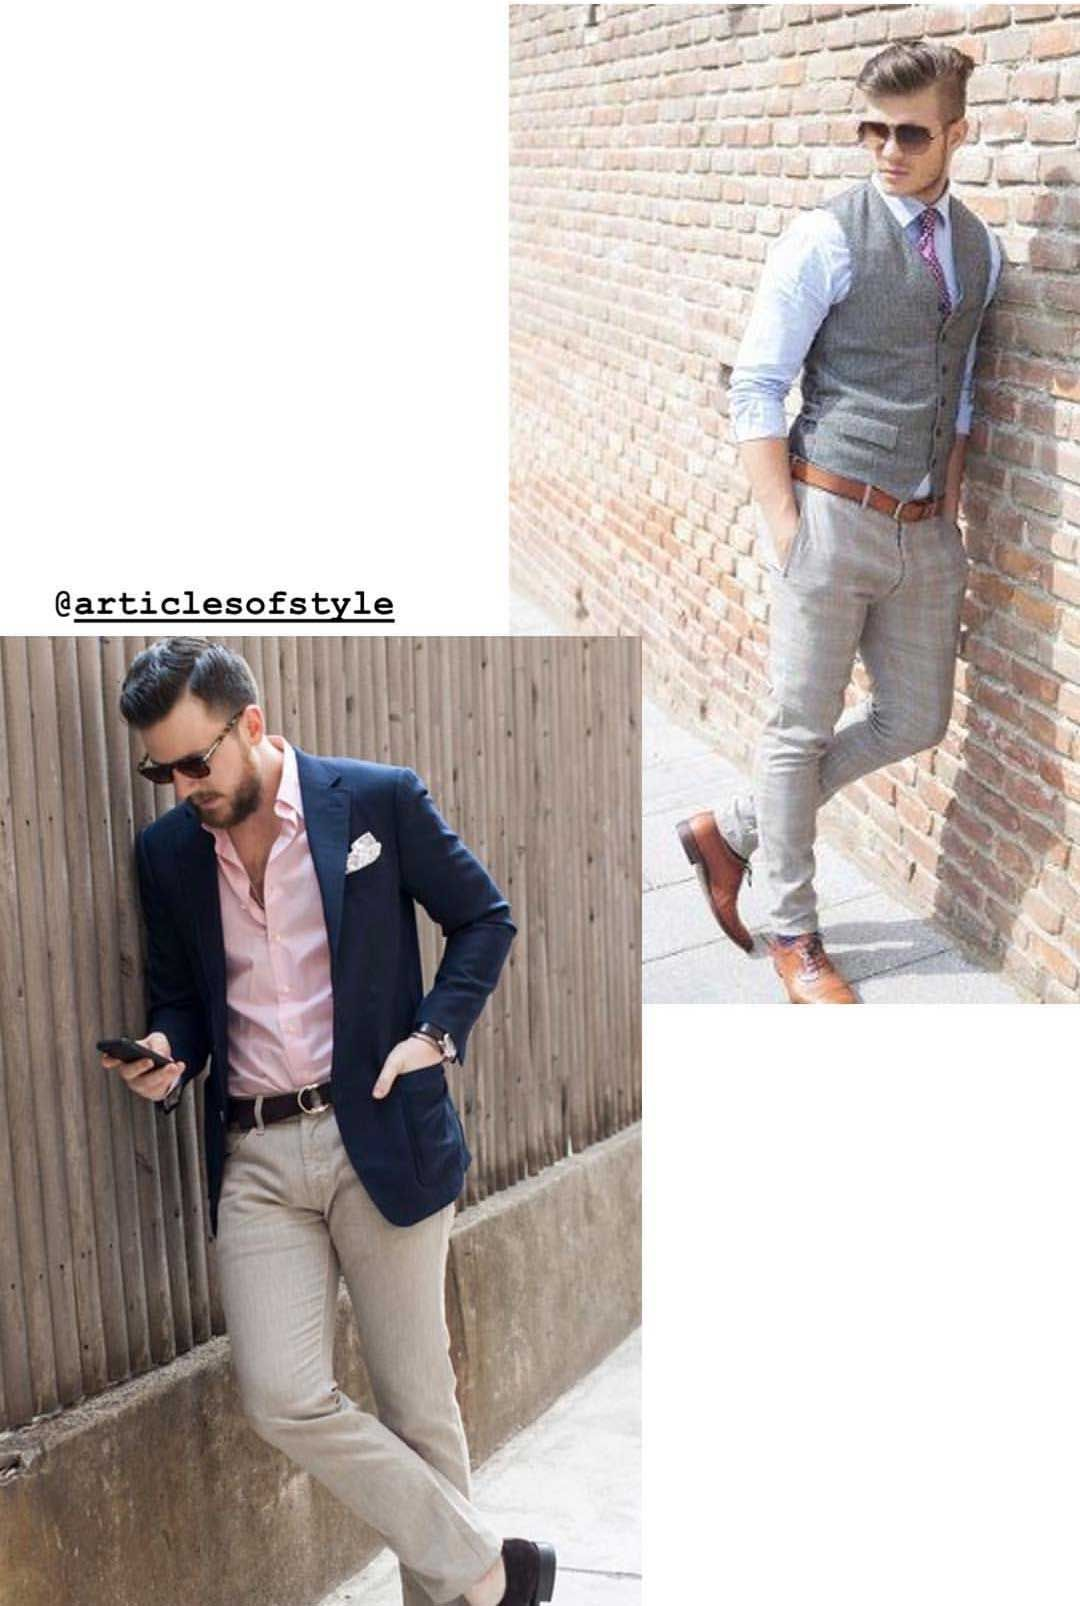 9d145e0b05728 What Is Garden Casual? The Invitation Says Garden Casual Attire – How Do I  Rock It?